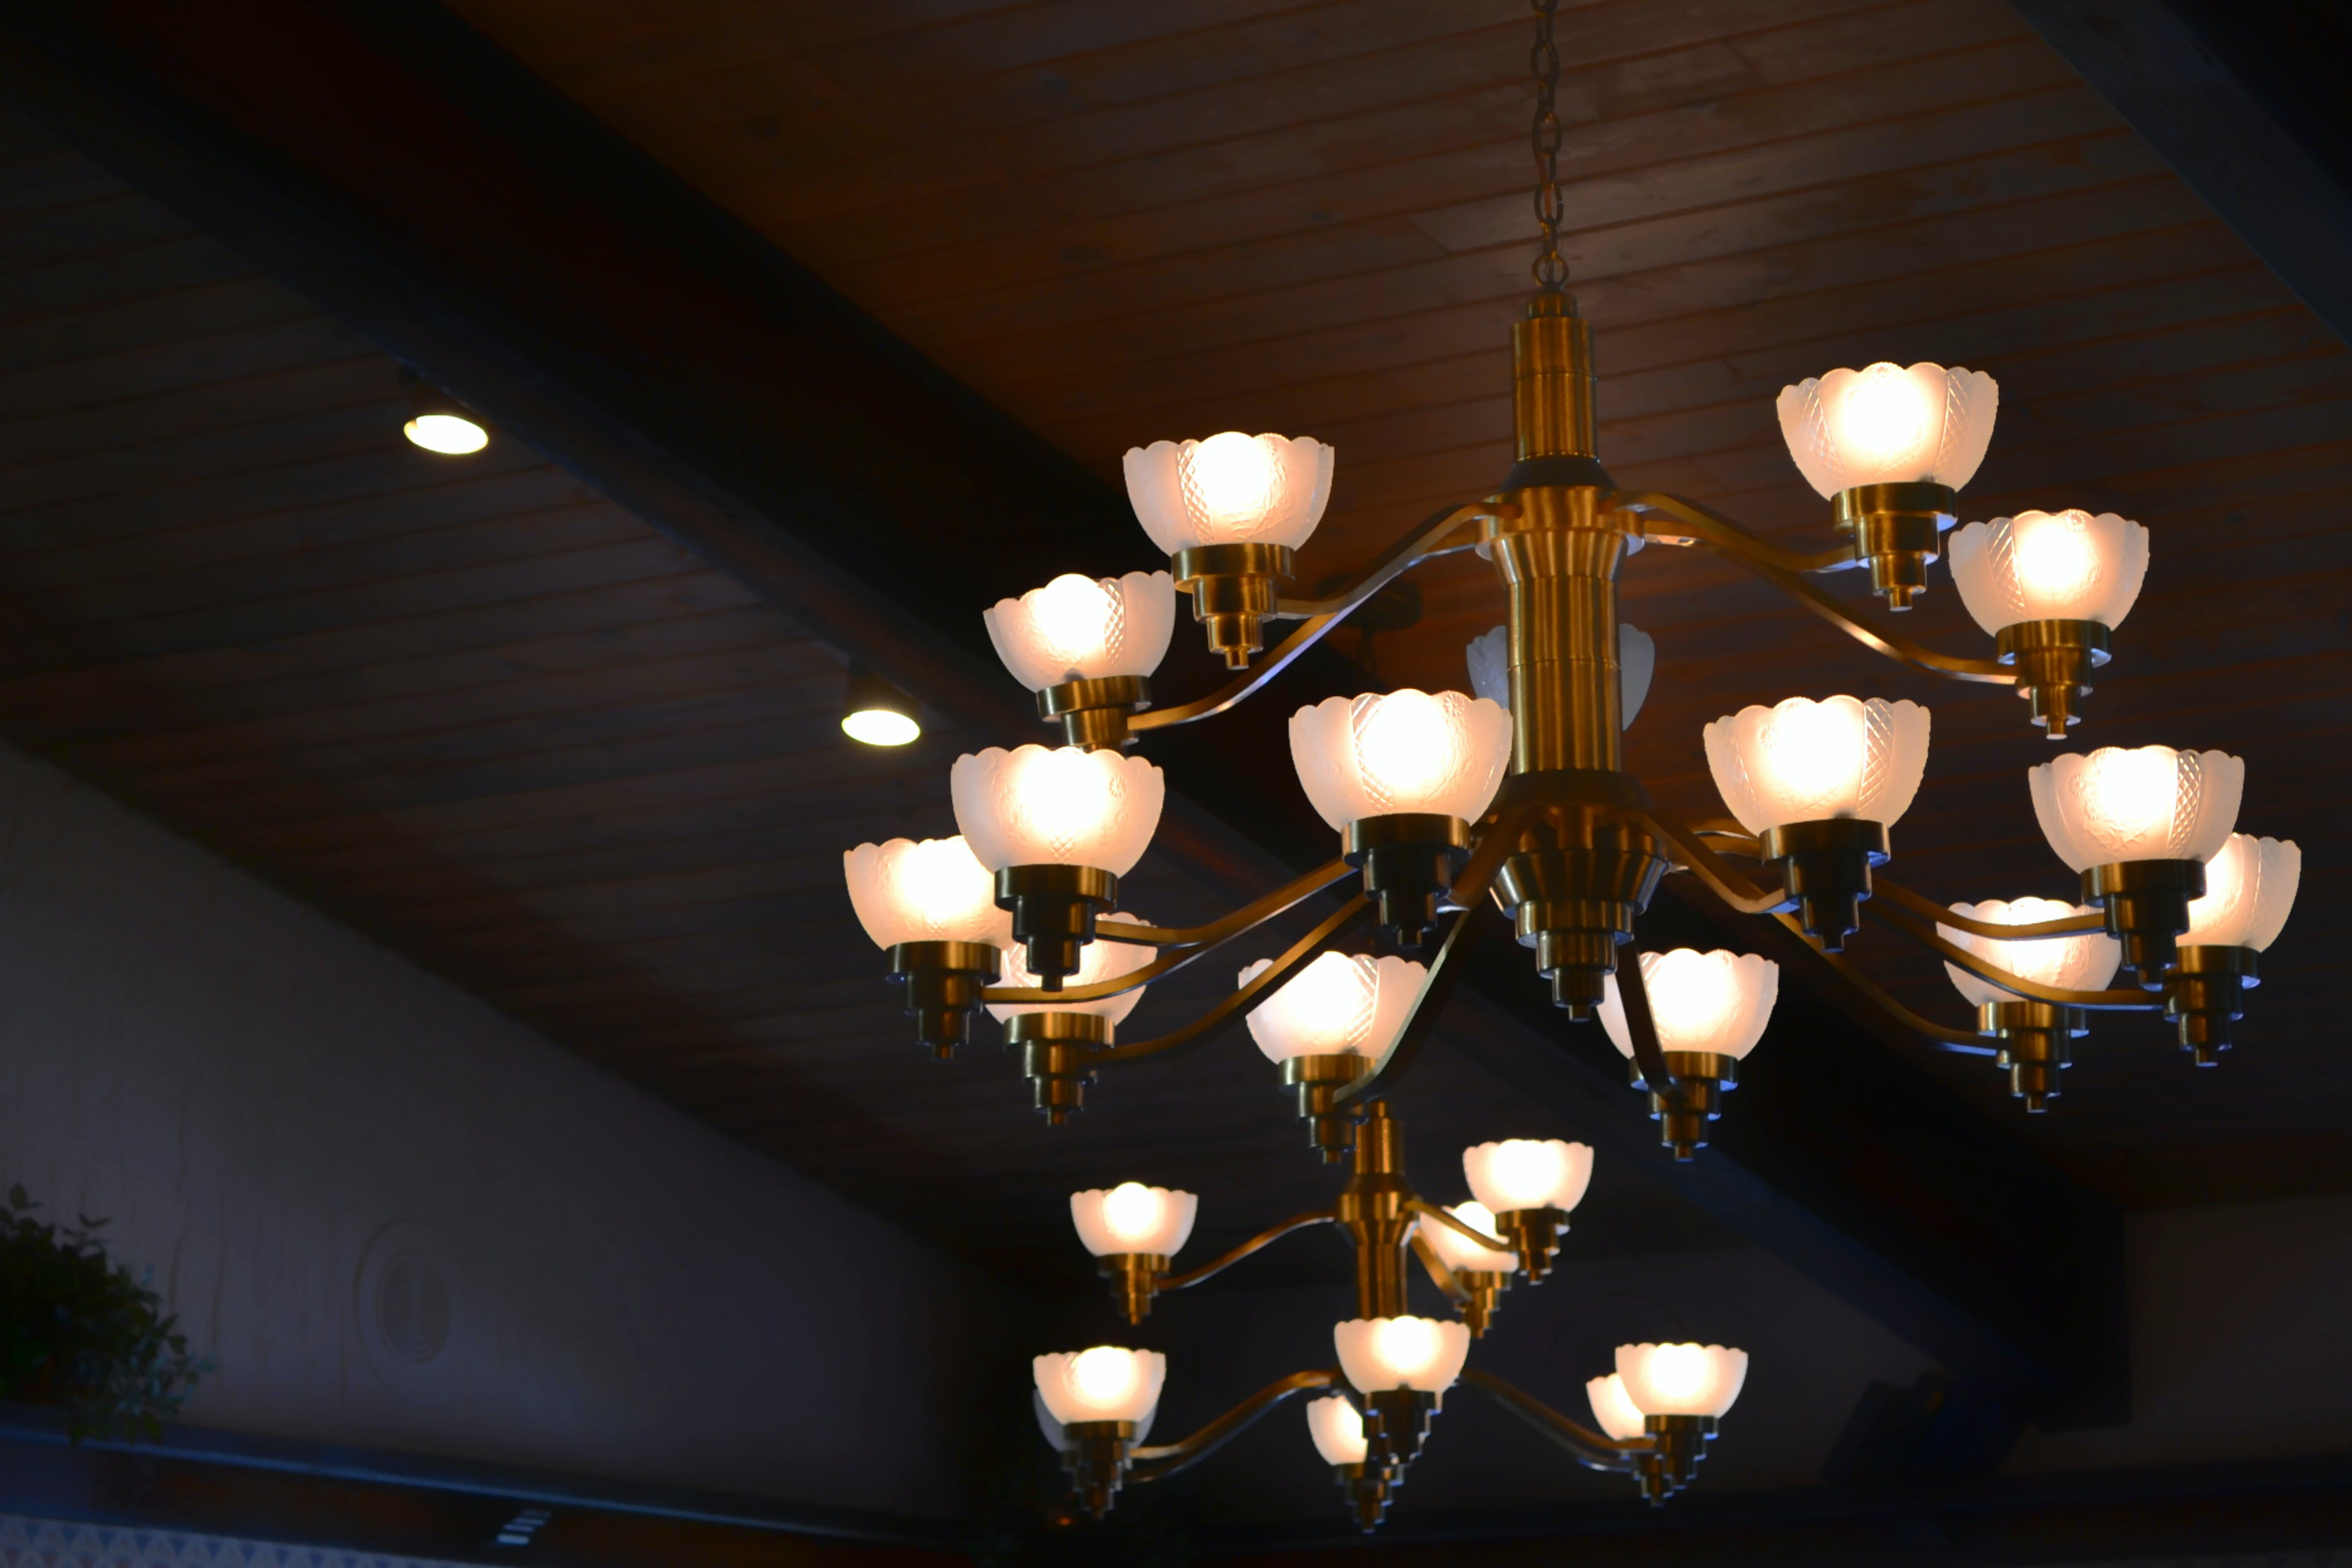 Turn on Brown Uplight Chandelier